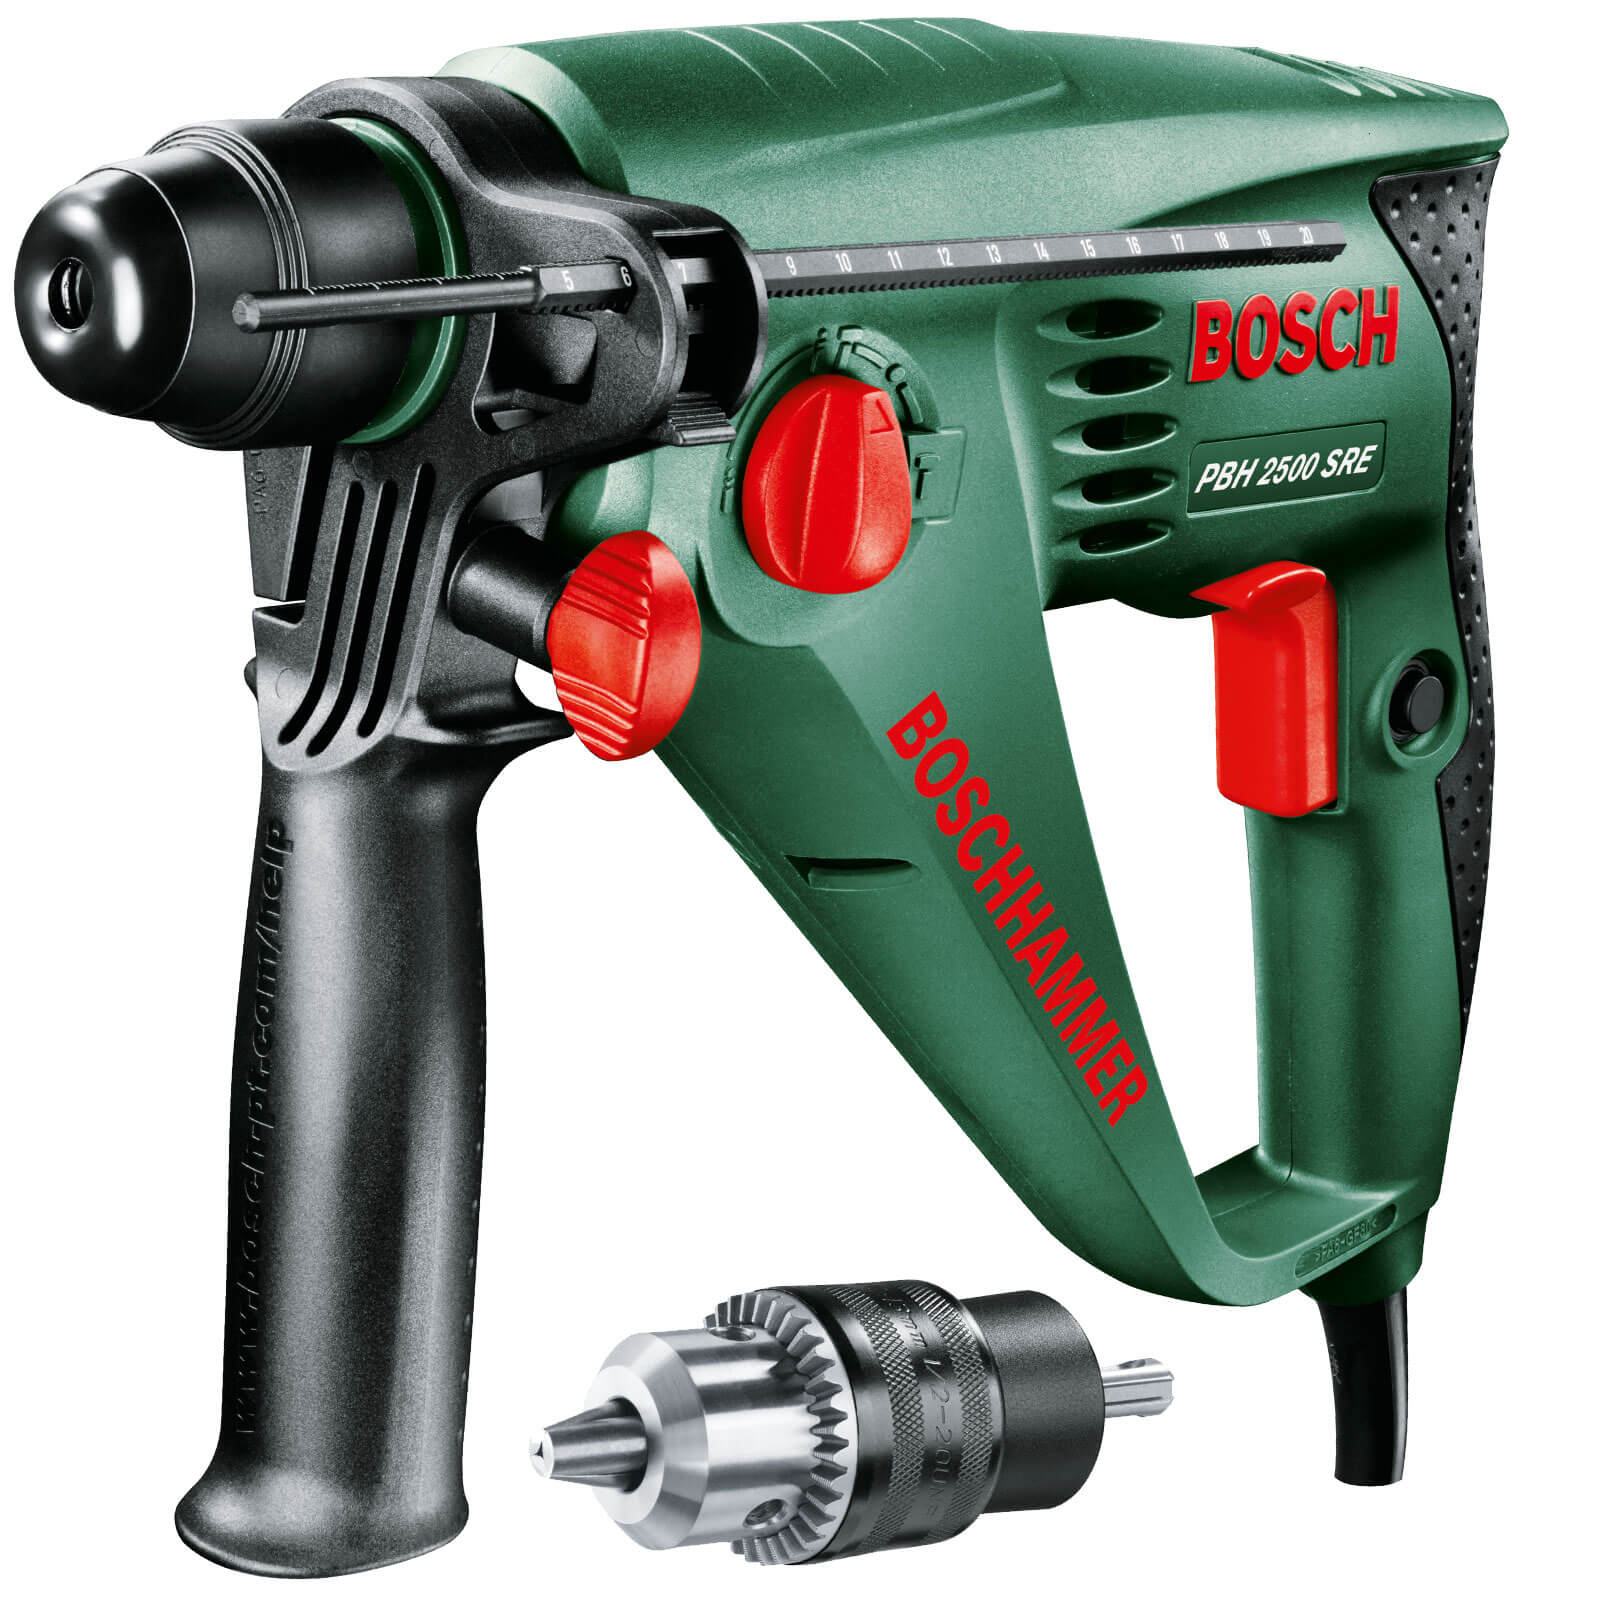 zzz bosch pbh 2500 sre rotary hammer drill. Black Bedroom Furniture Sets. Home Design Ideas